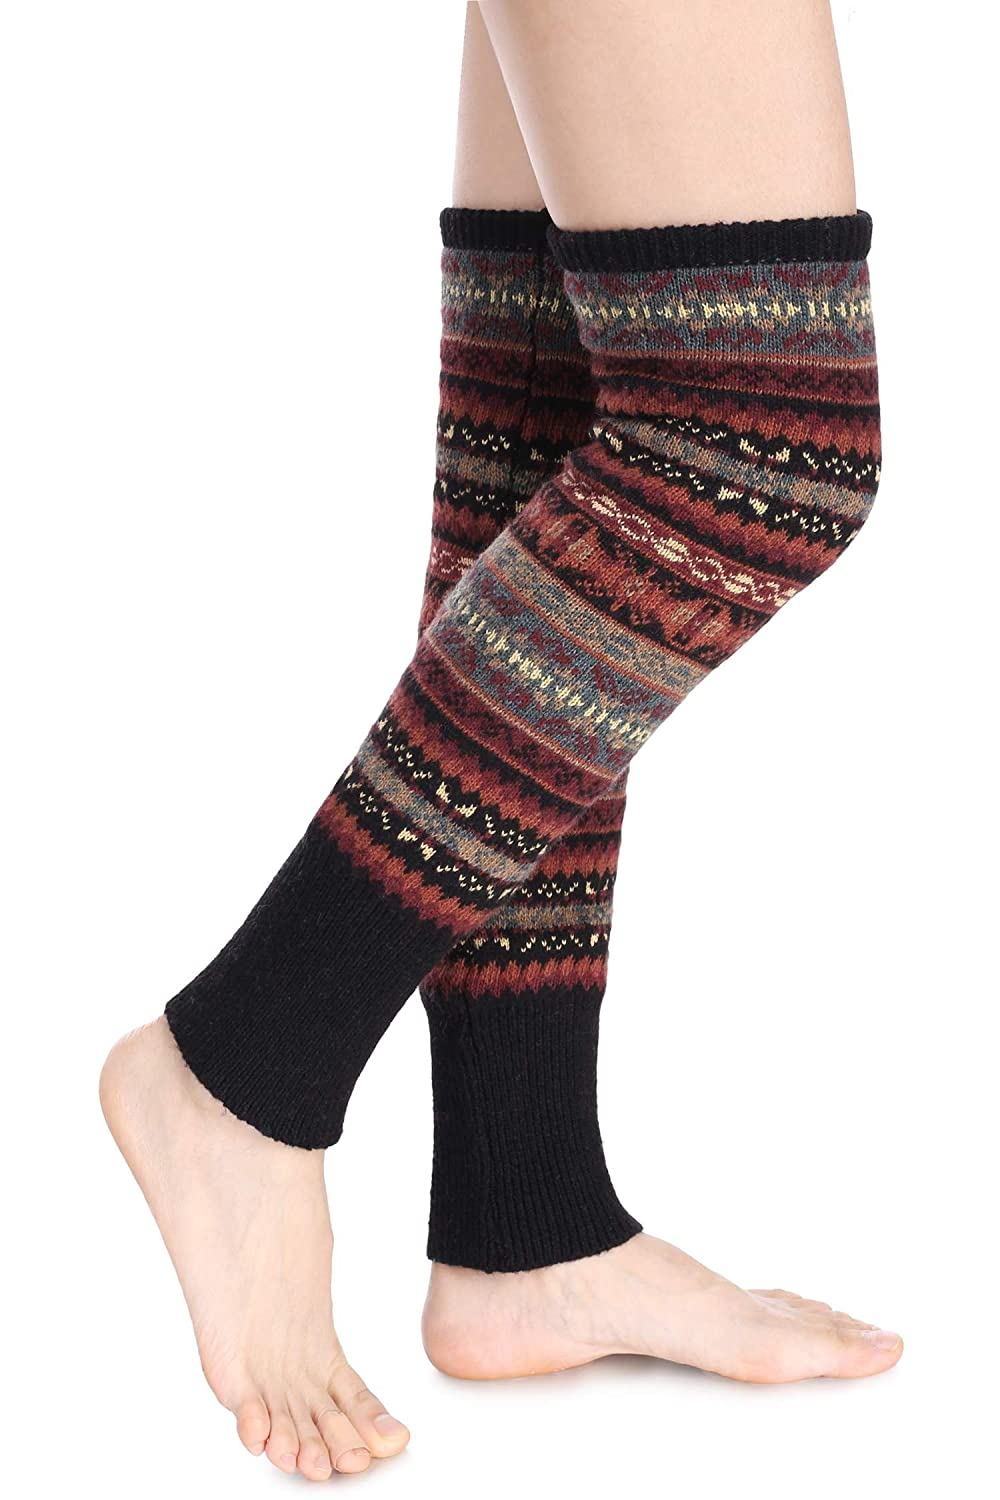 eshion (US STOCK) Womens Bohemian Flats Cut Out Shoes Knitted Knee High Crochet Boots